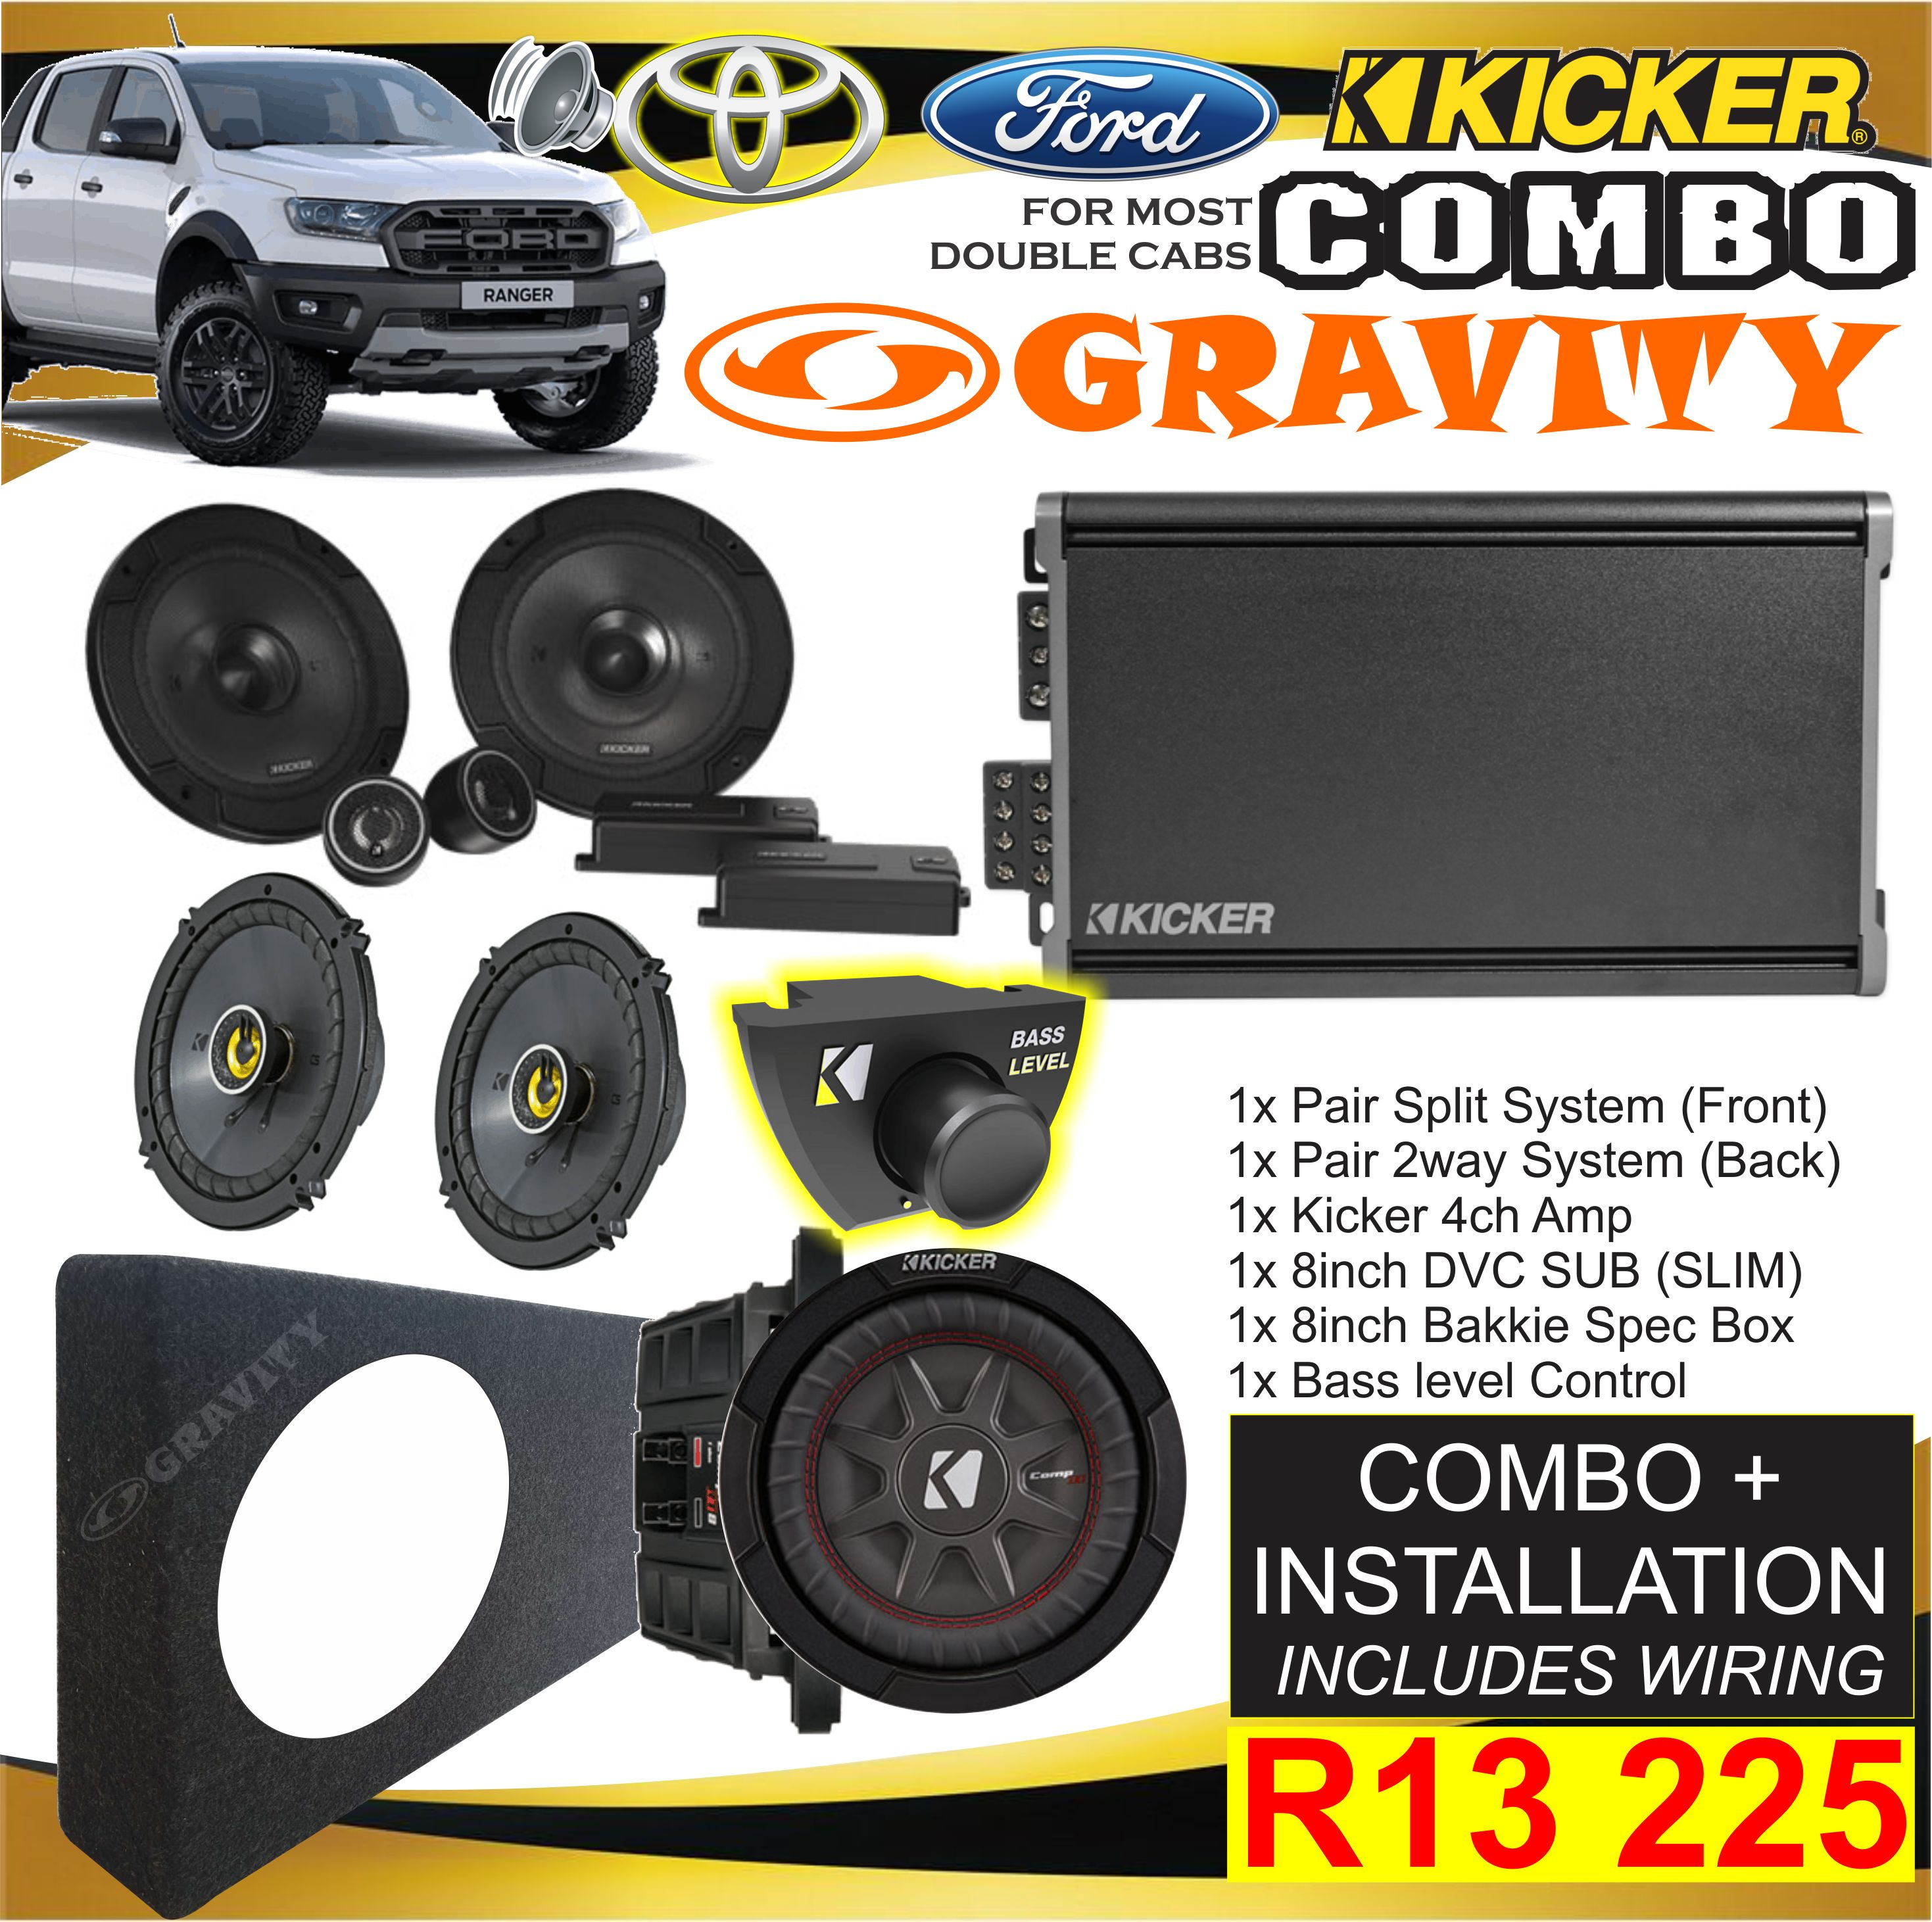 car audio combo , car audio equipment , sony , pioneer ,jvc , kicker , targa , xtc , jbl . starsound , focal , one nav , ford ranger combo , toyota hilux combos , double cab combos